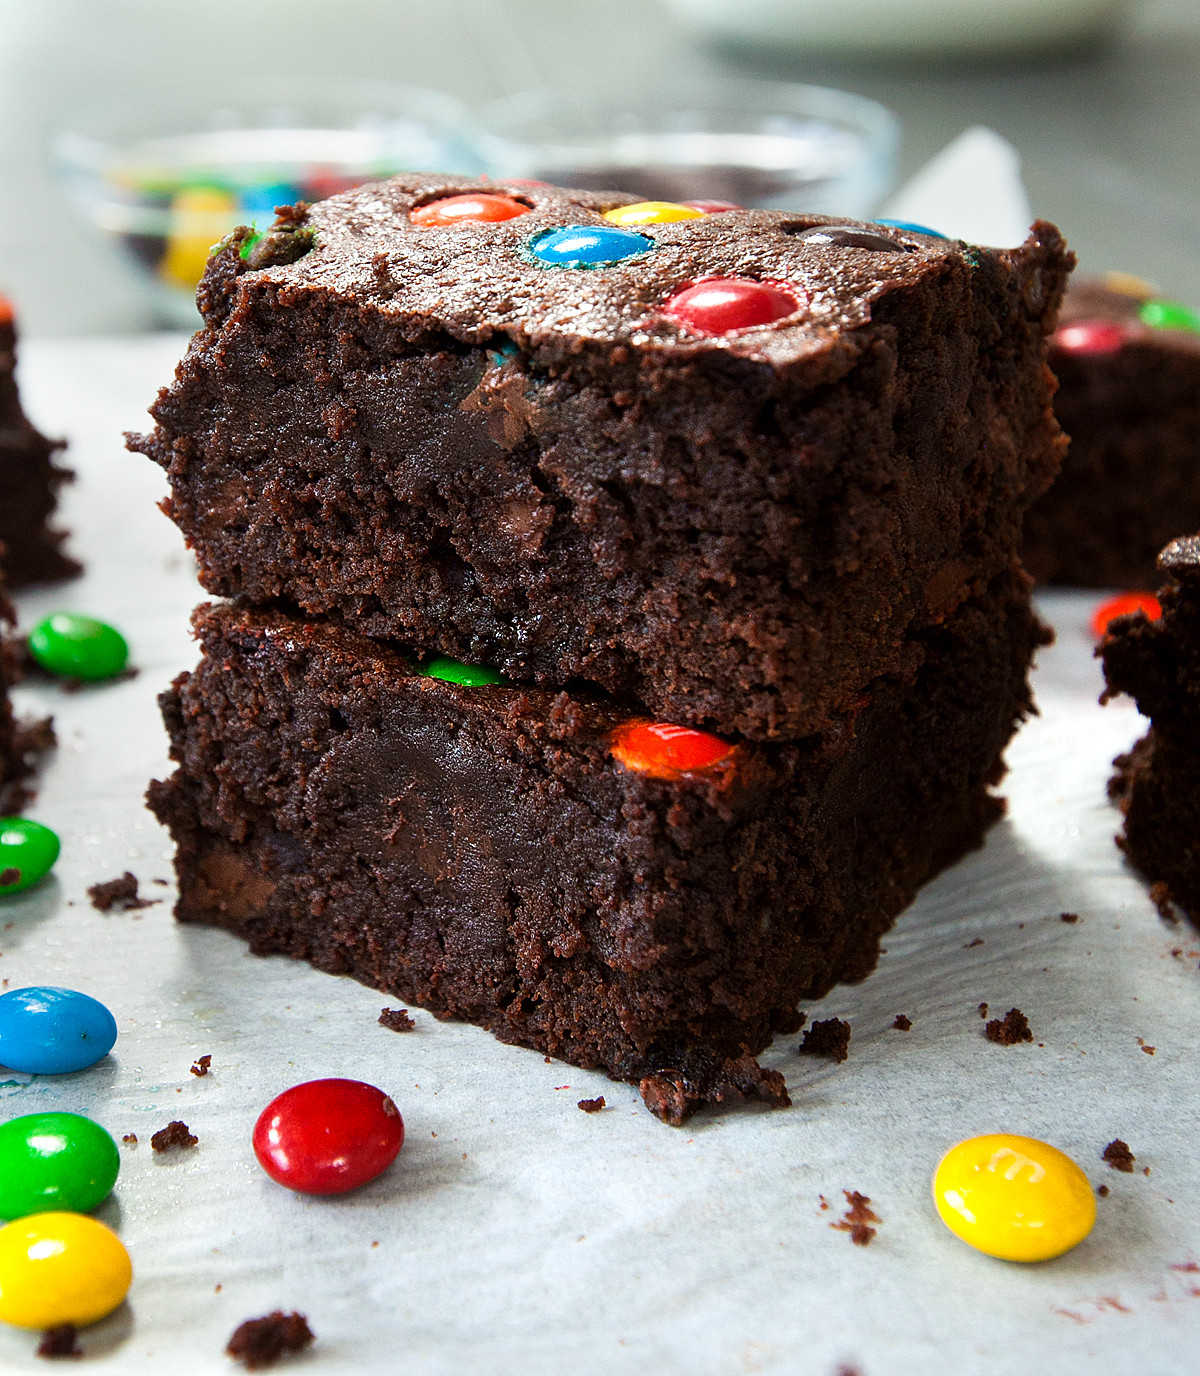 A stack of two very thick and delicious looking brownies with M&Ms scattered around